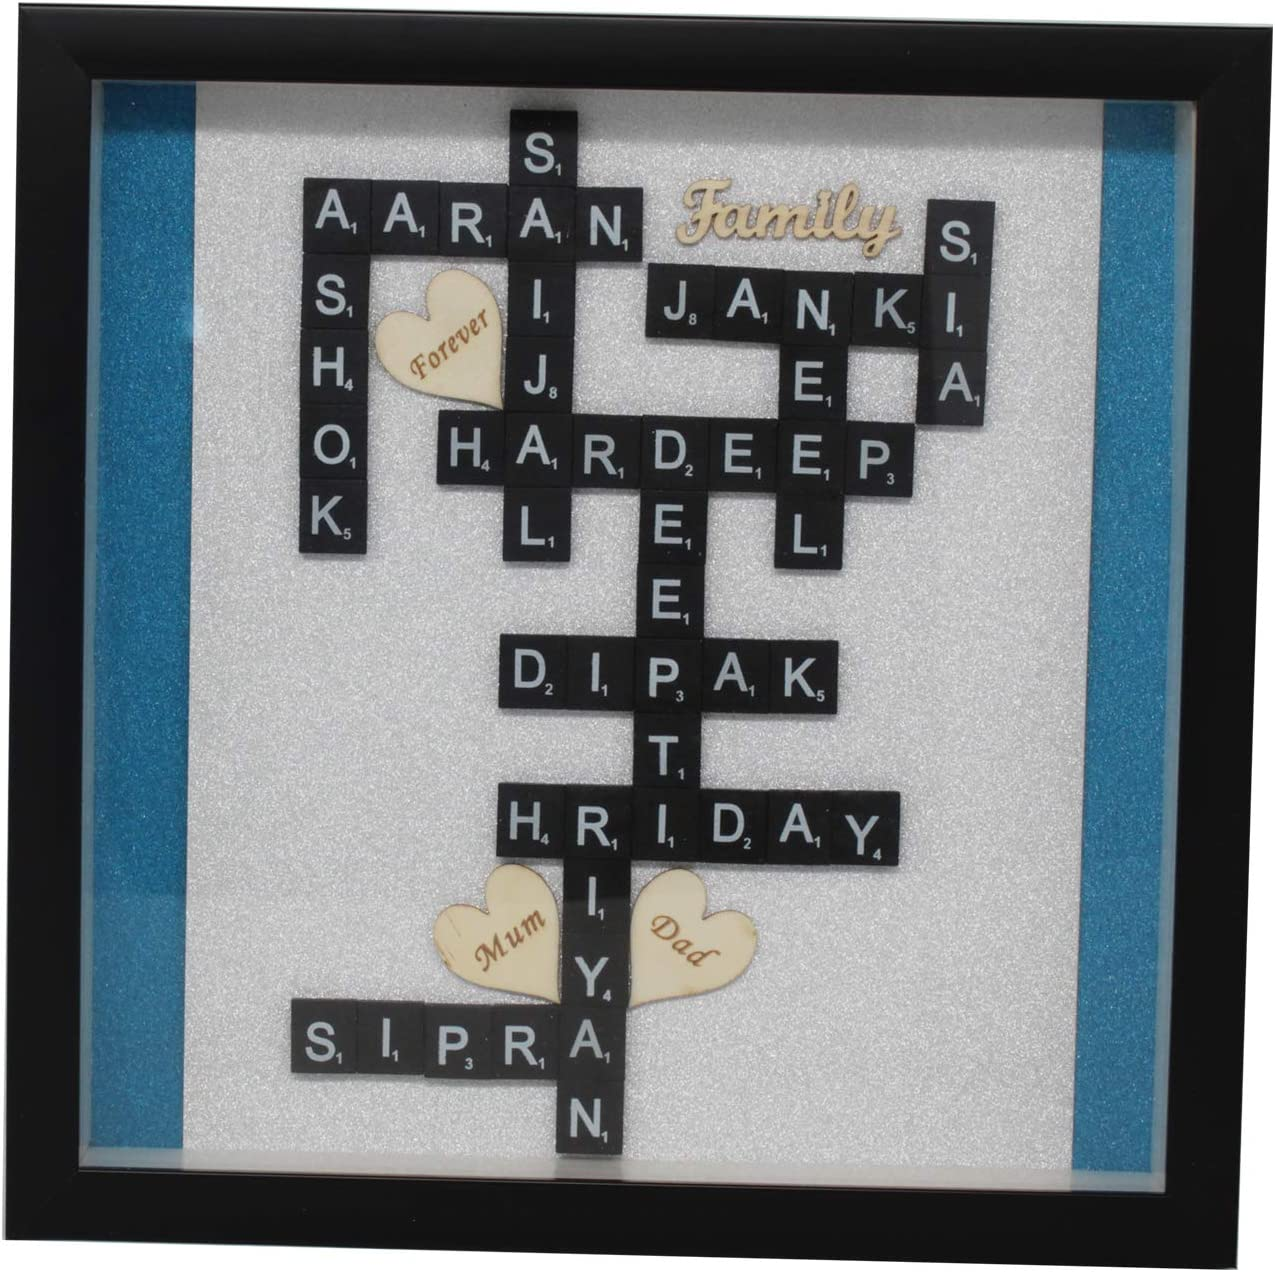 Trimming Shop Personalizado Madera Marco con Scrabble Letras, Purpurina Papel, Personalizar Nombre para Regalar, Pared Decorativa - Frm29: Amazon.es: Hogar